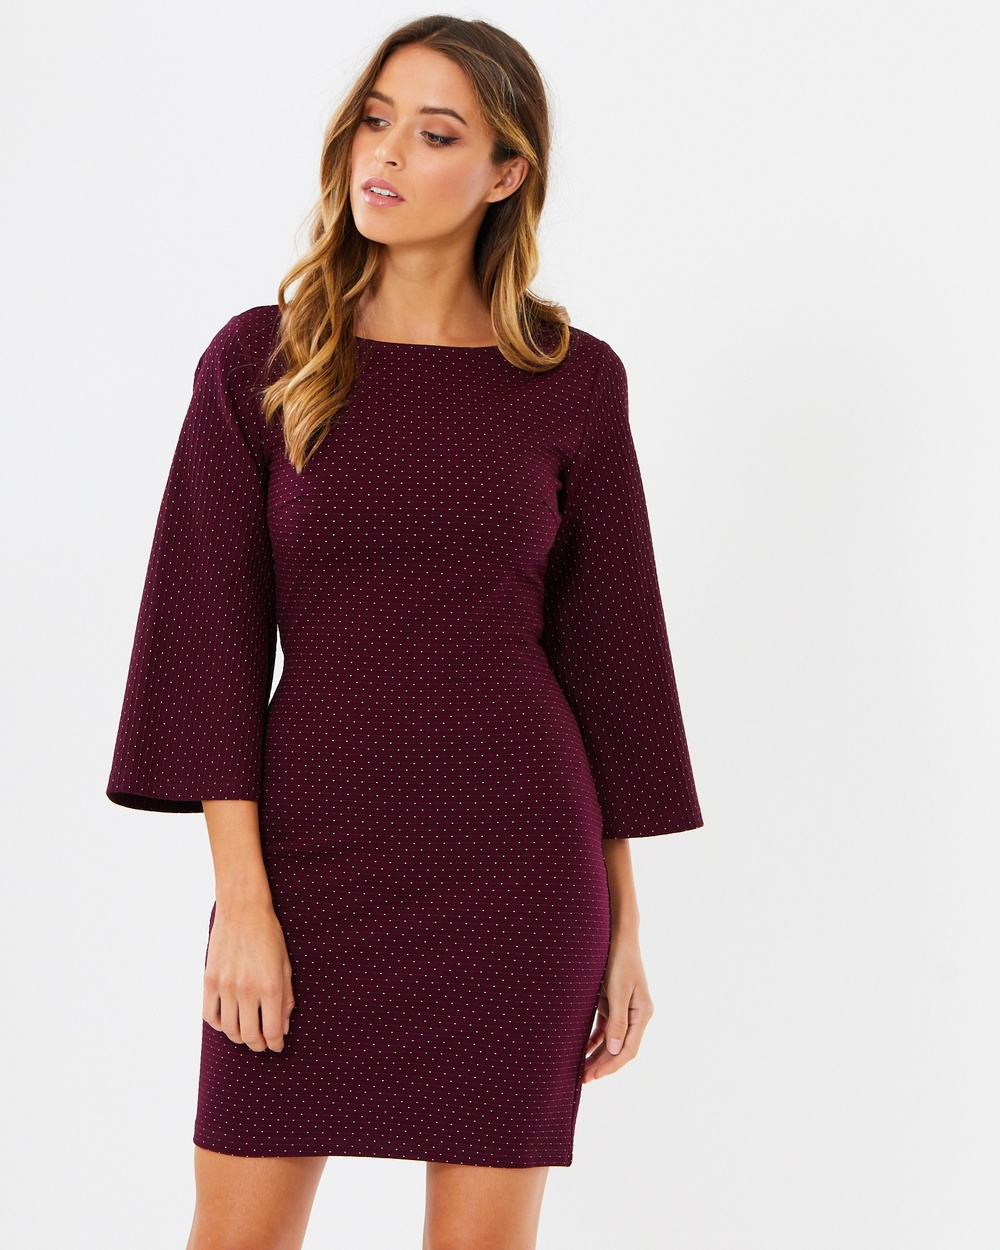 Tussah Gabrielle Bodycon Dress Dresses Plum Base Spot Gabrielle Bodycon Dress